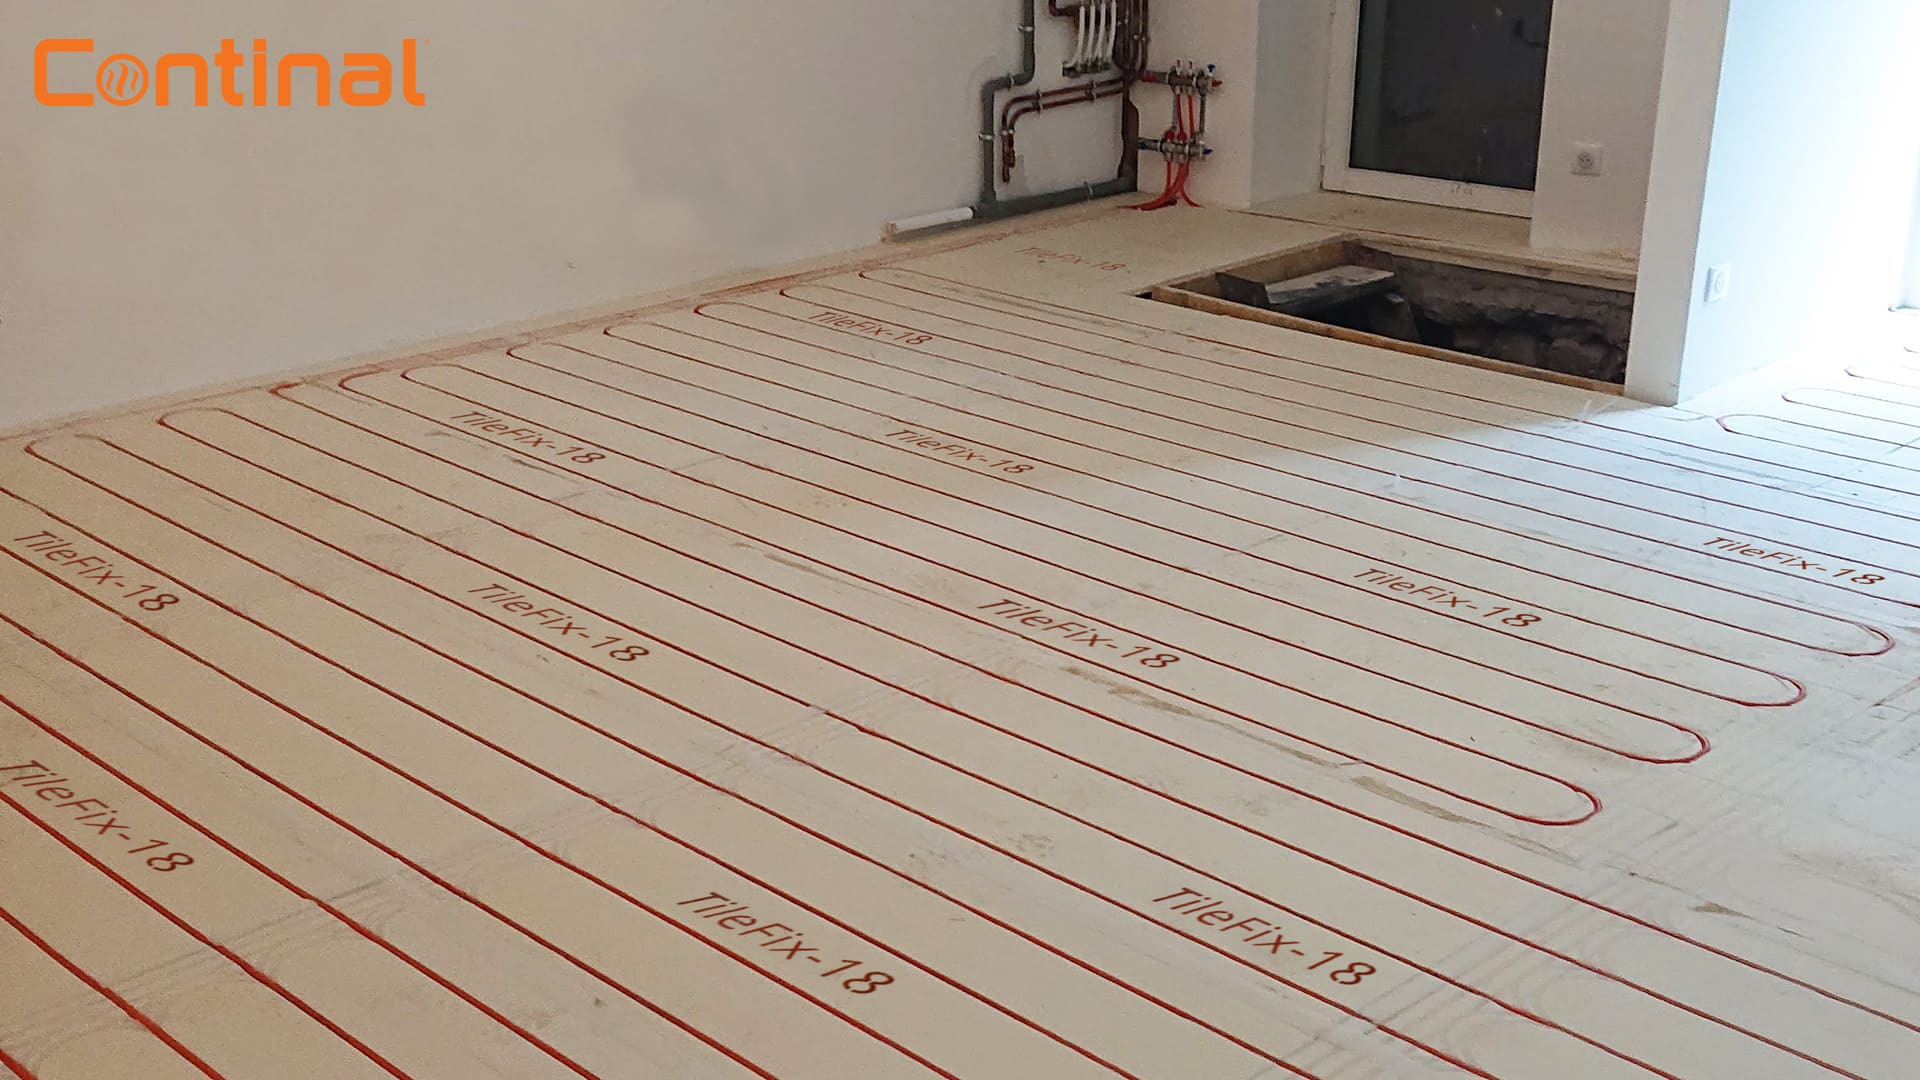 The Continal team was contacted by a homeowner who wanted to add energy-efficient, warm-water underfloor heating to the dining room and kitchen of his four-bedroom detached home in Surrey.